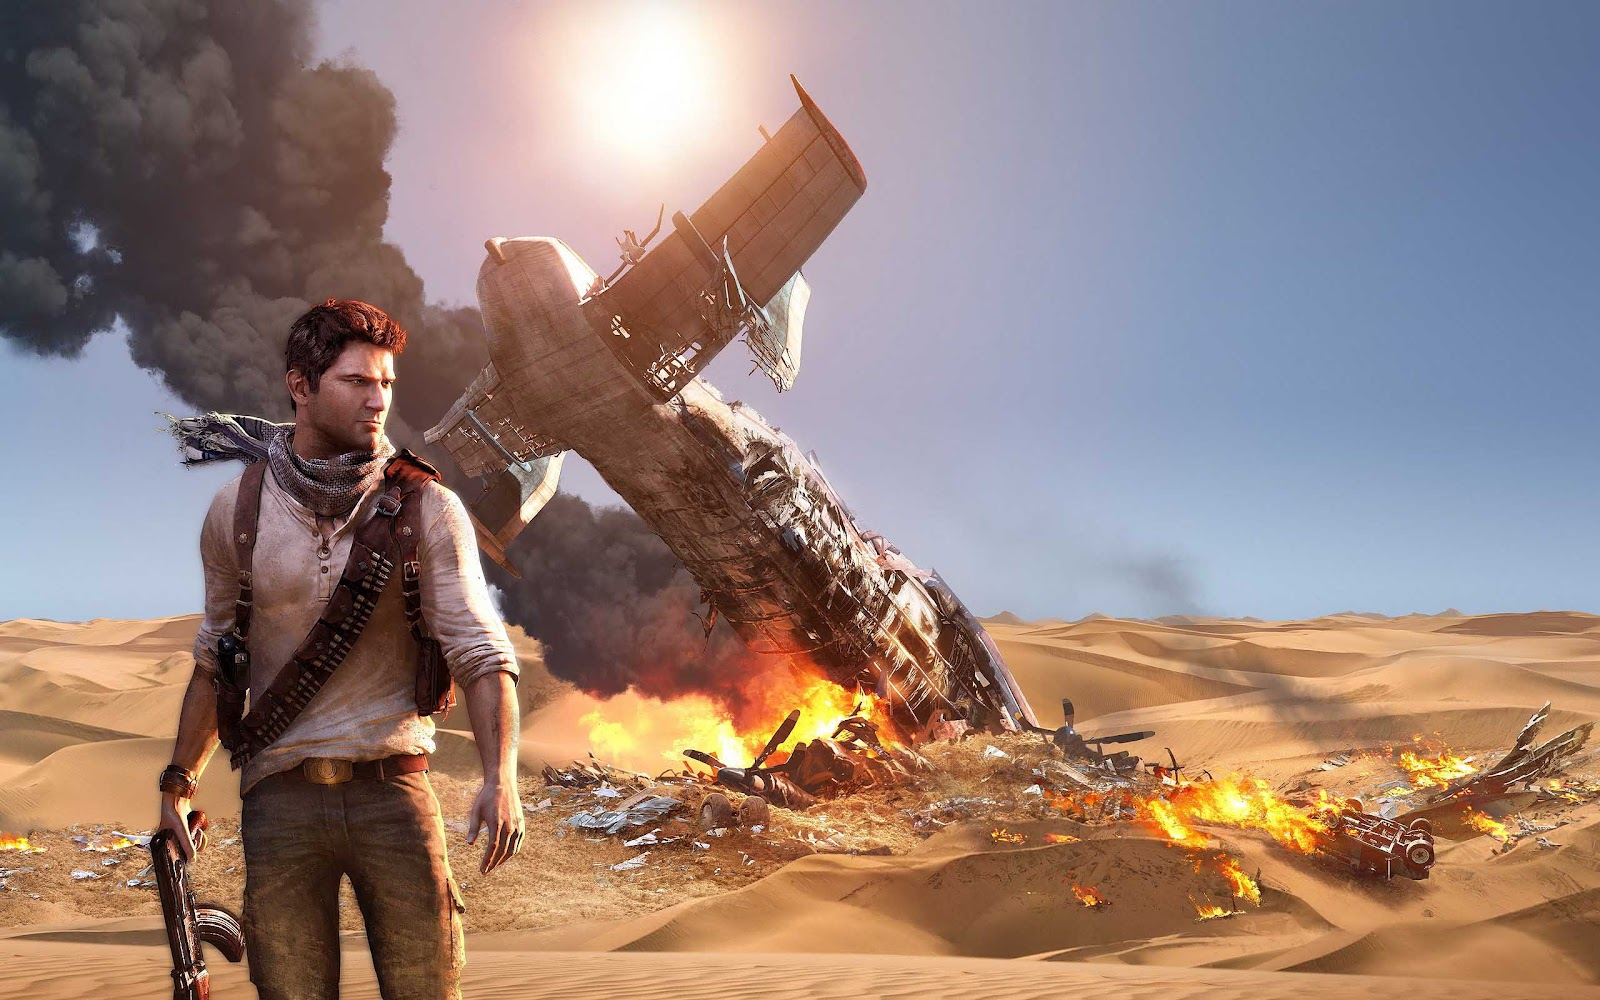 Uncharted 3 Wallpapers HD - WallpaperSafari